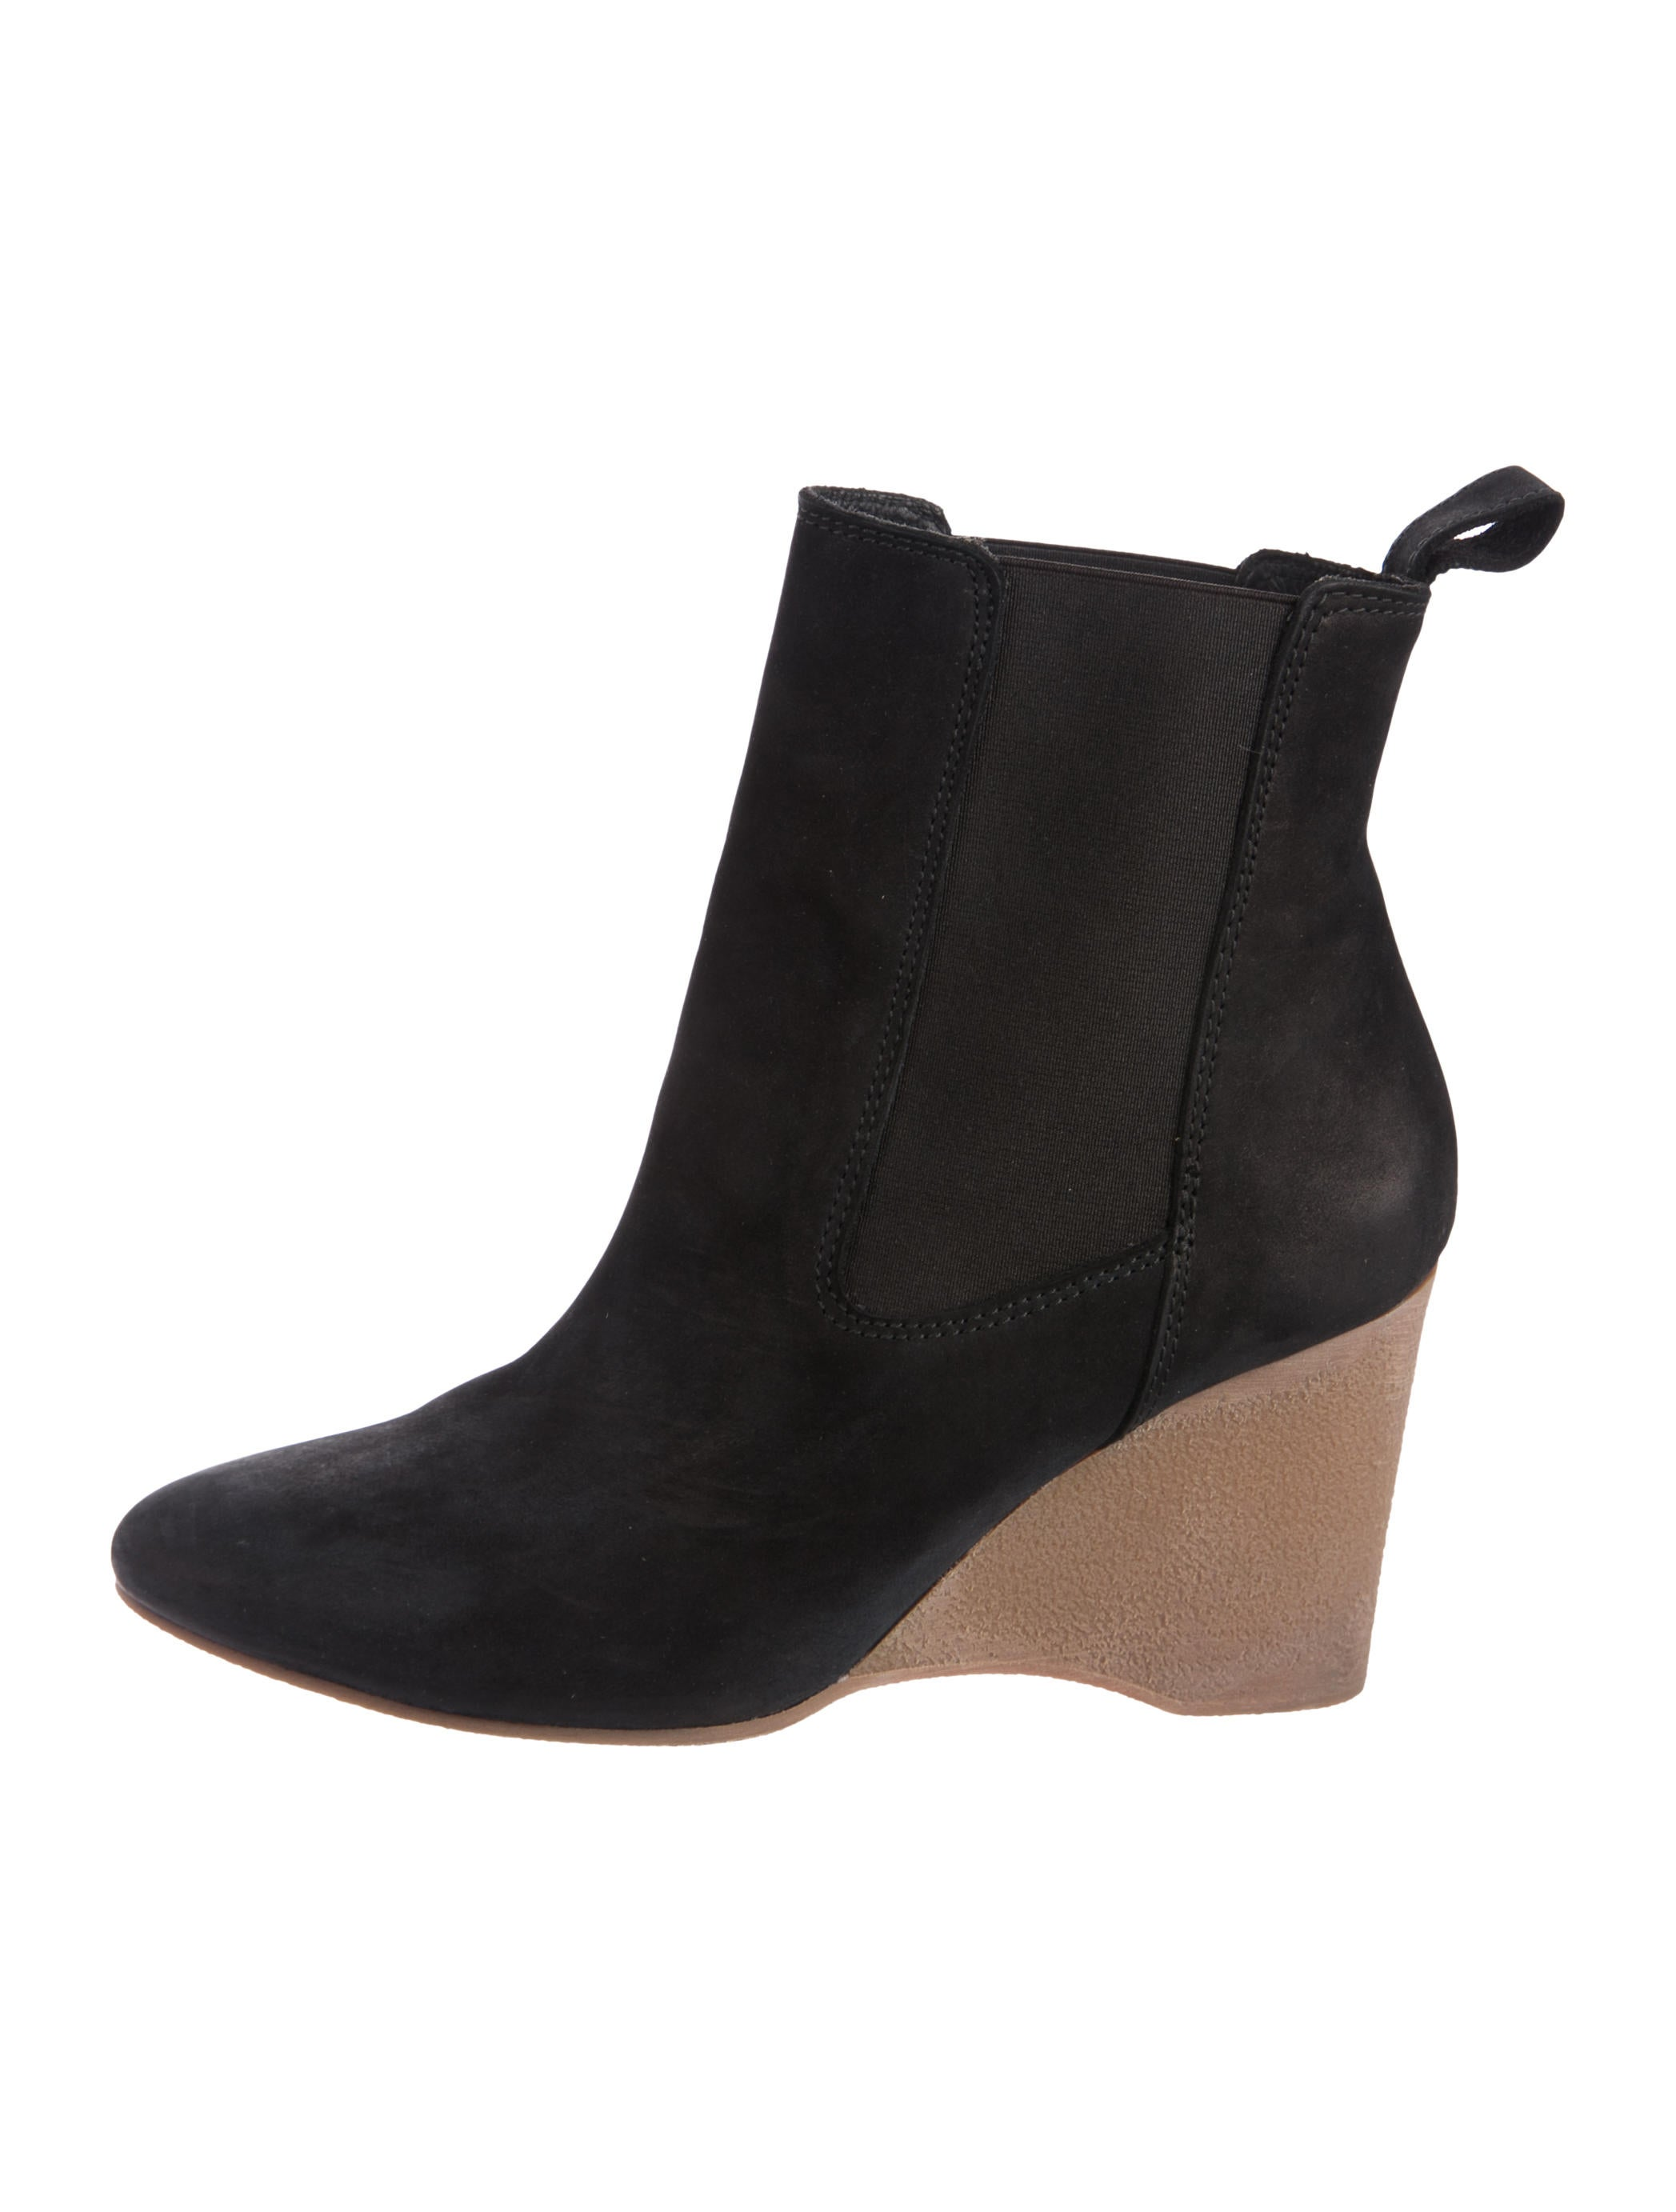 outlet excellent Vanessa Bruno Suede Wedge Ankle Boots sale recommend discount great deals cheap sale websites XRKX4R4C